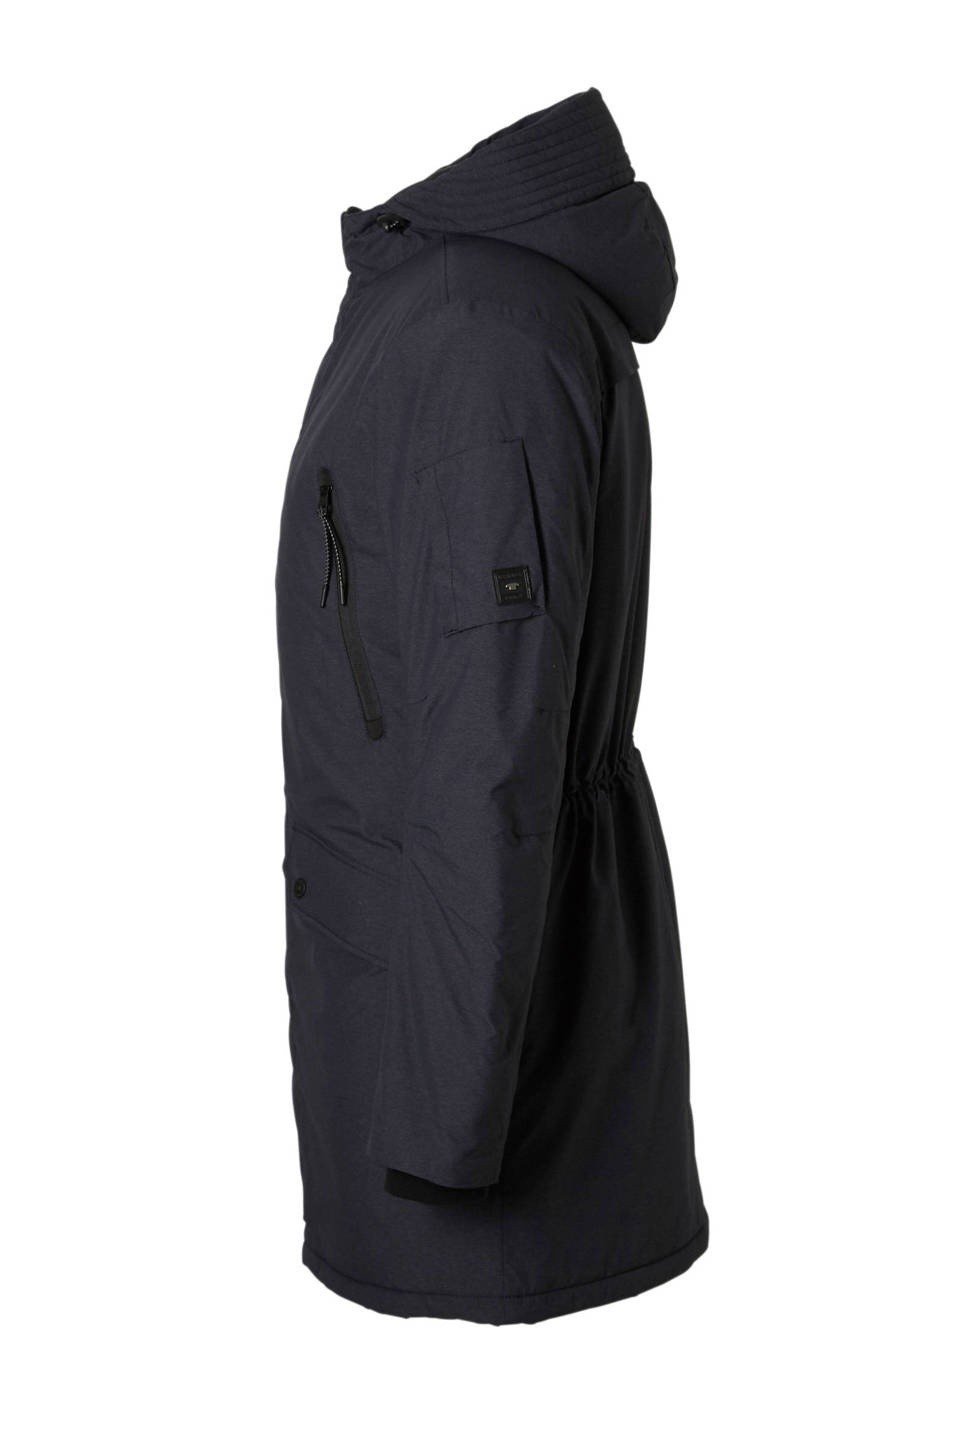 Parka Dames Winterjas.Tom Tailor Heren Winterjas Parka Online Kopen